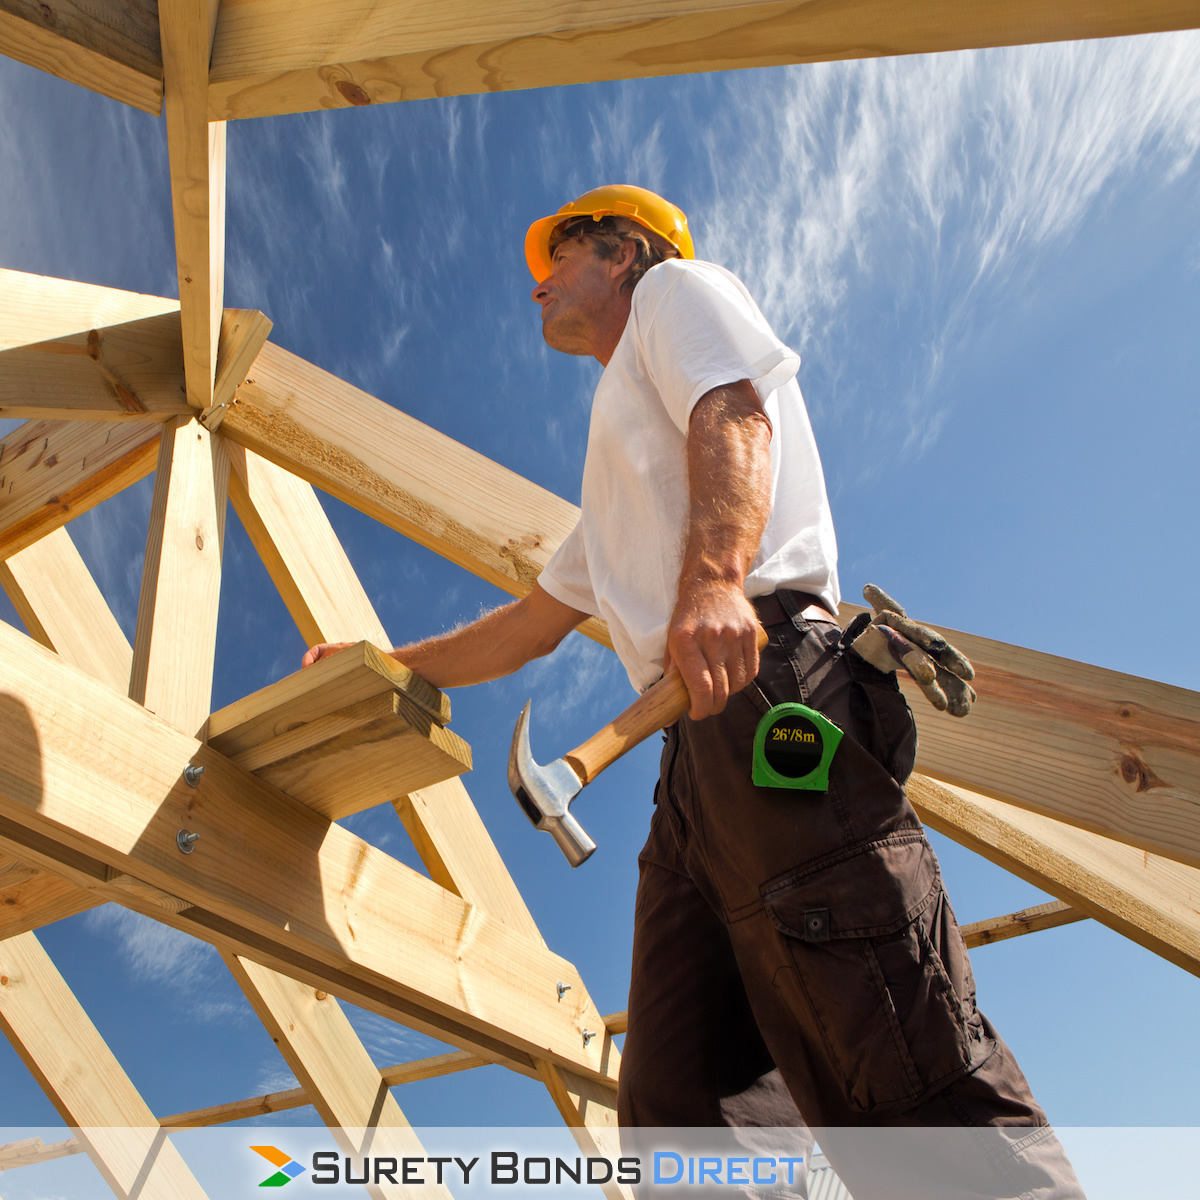 District Of Columbia Contractor License Or Permit Bond Surety